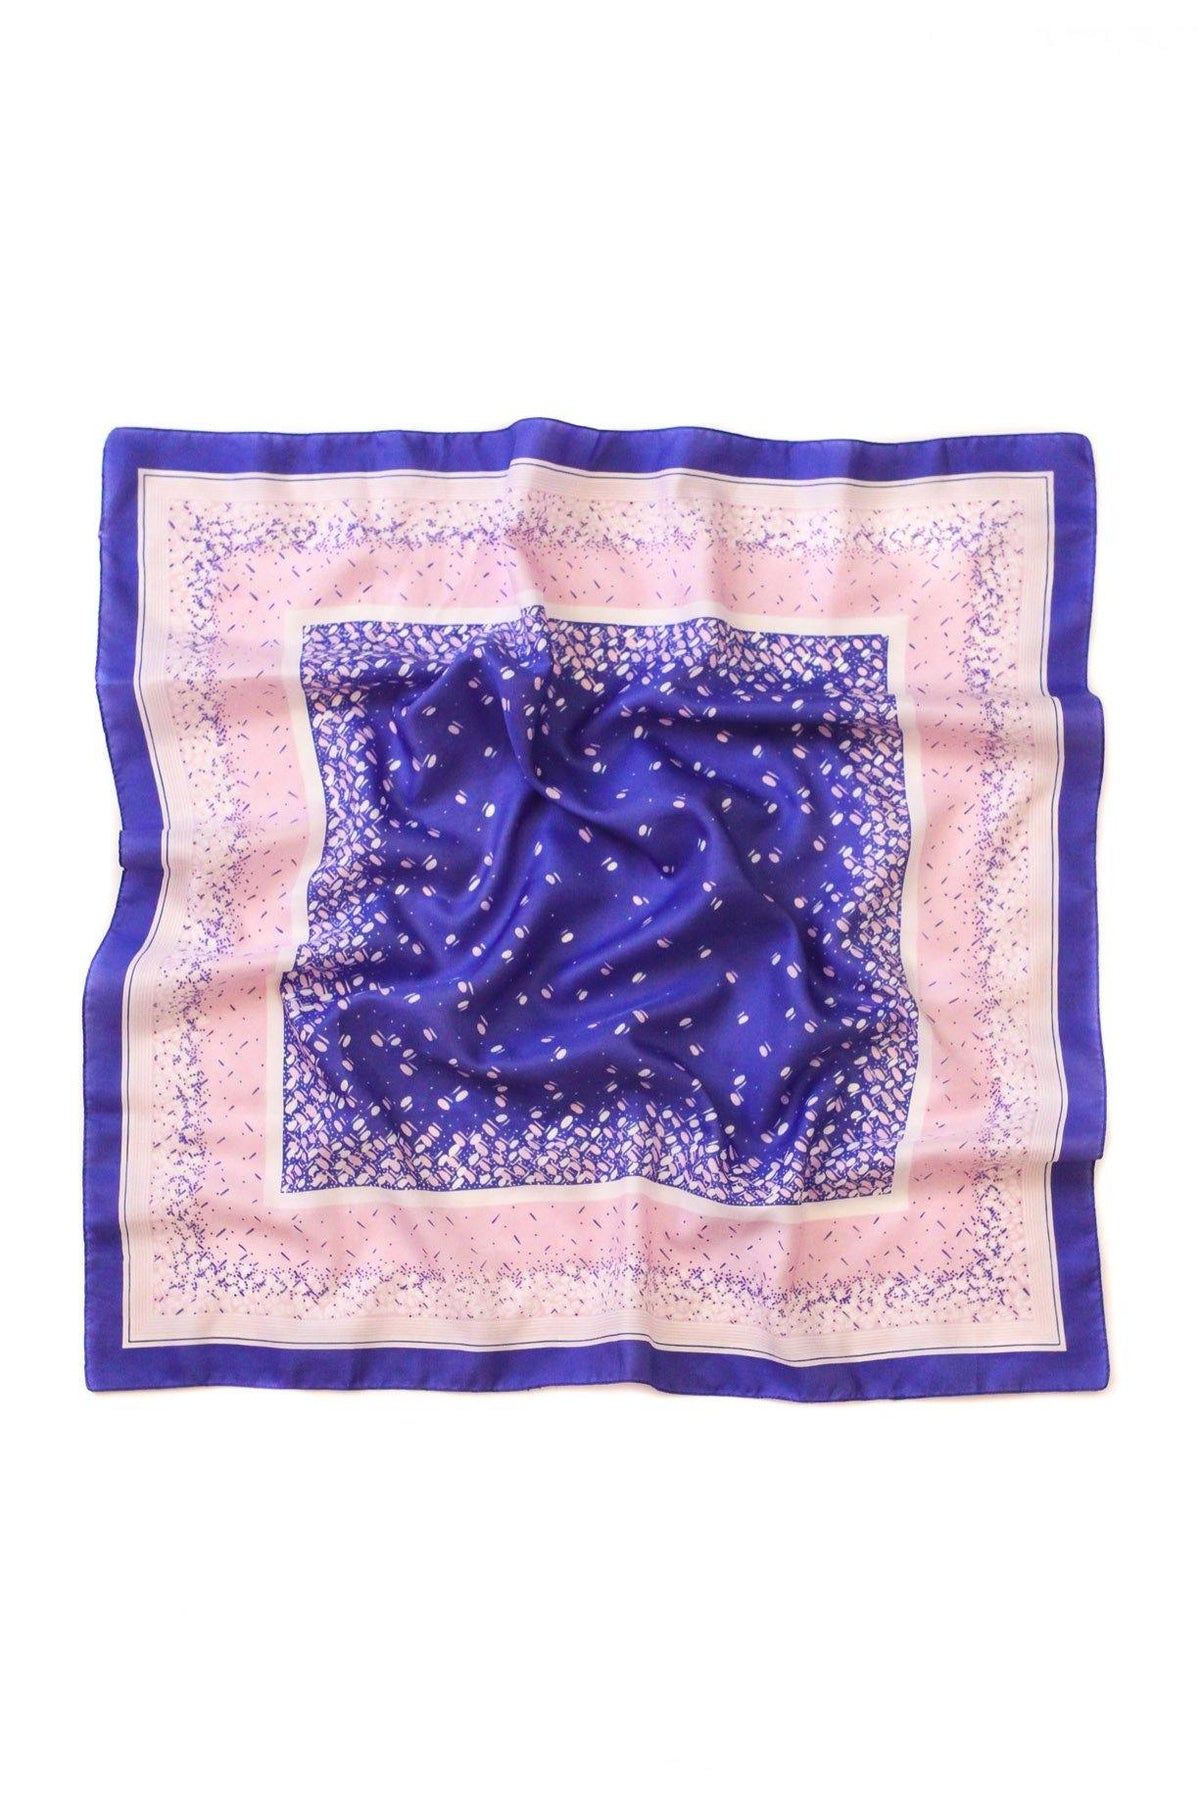 Blue and purple confetti scarf from Sweet & Spark.